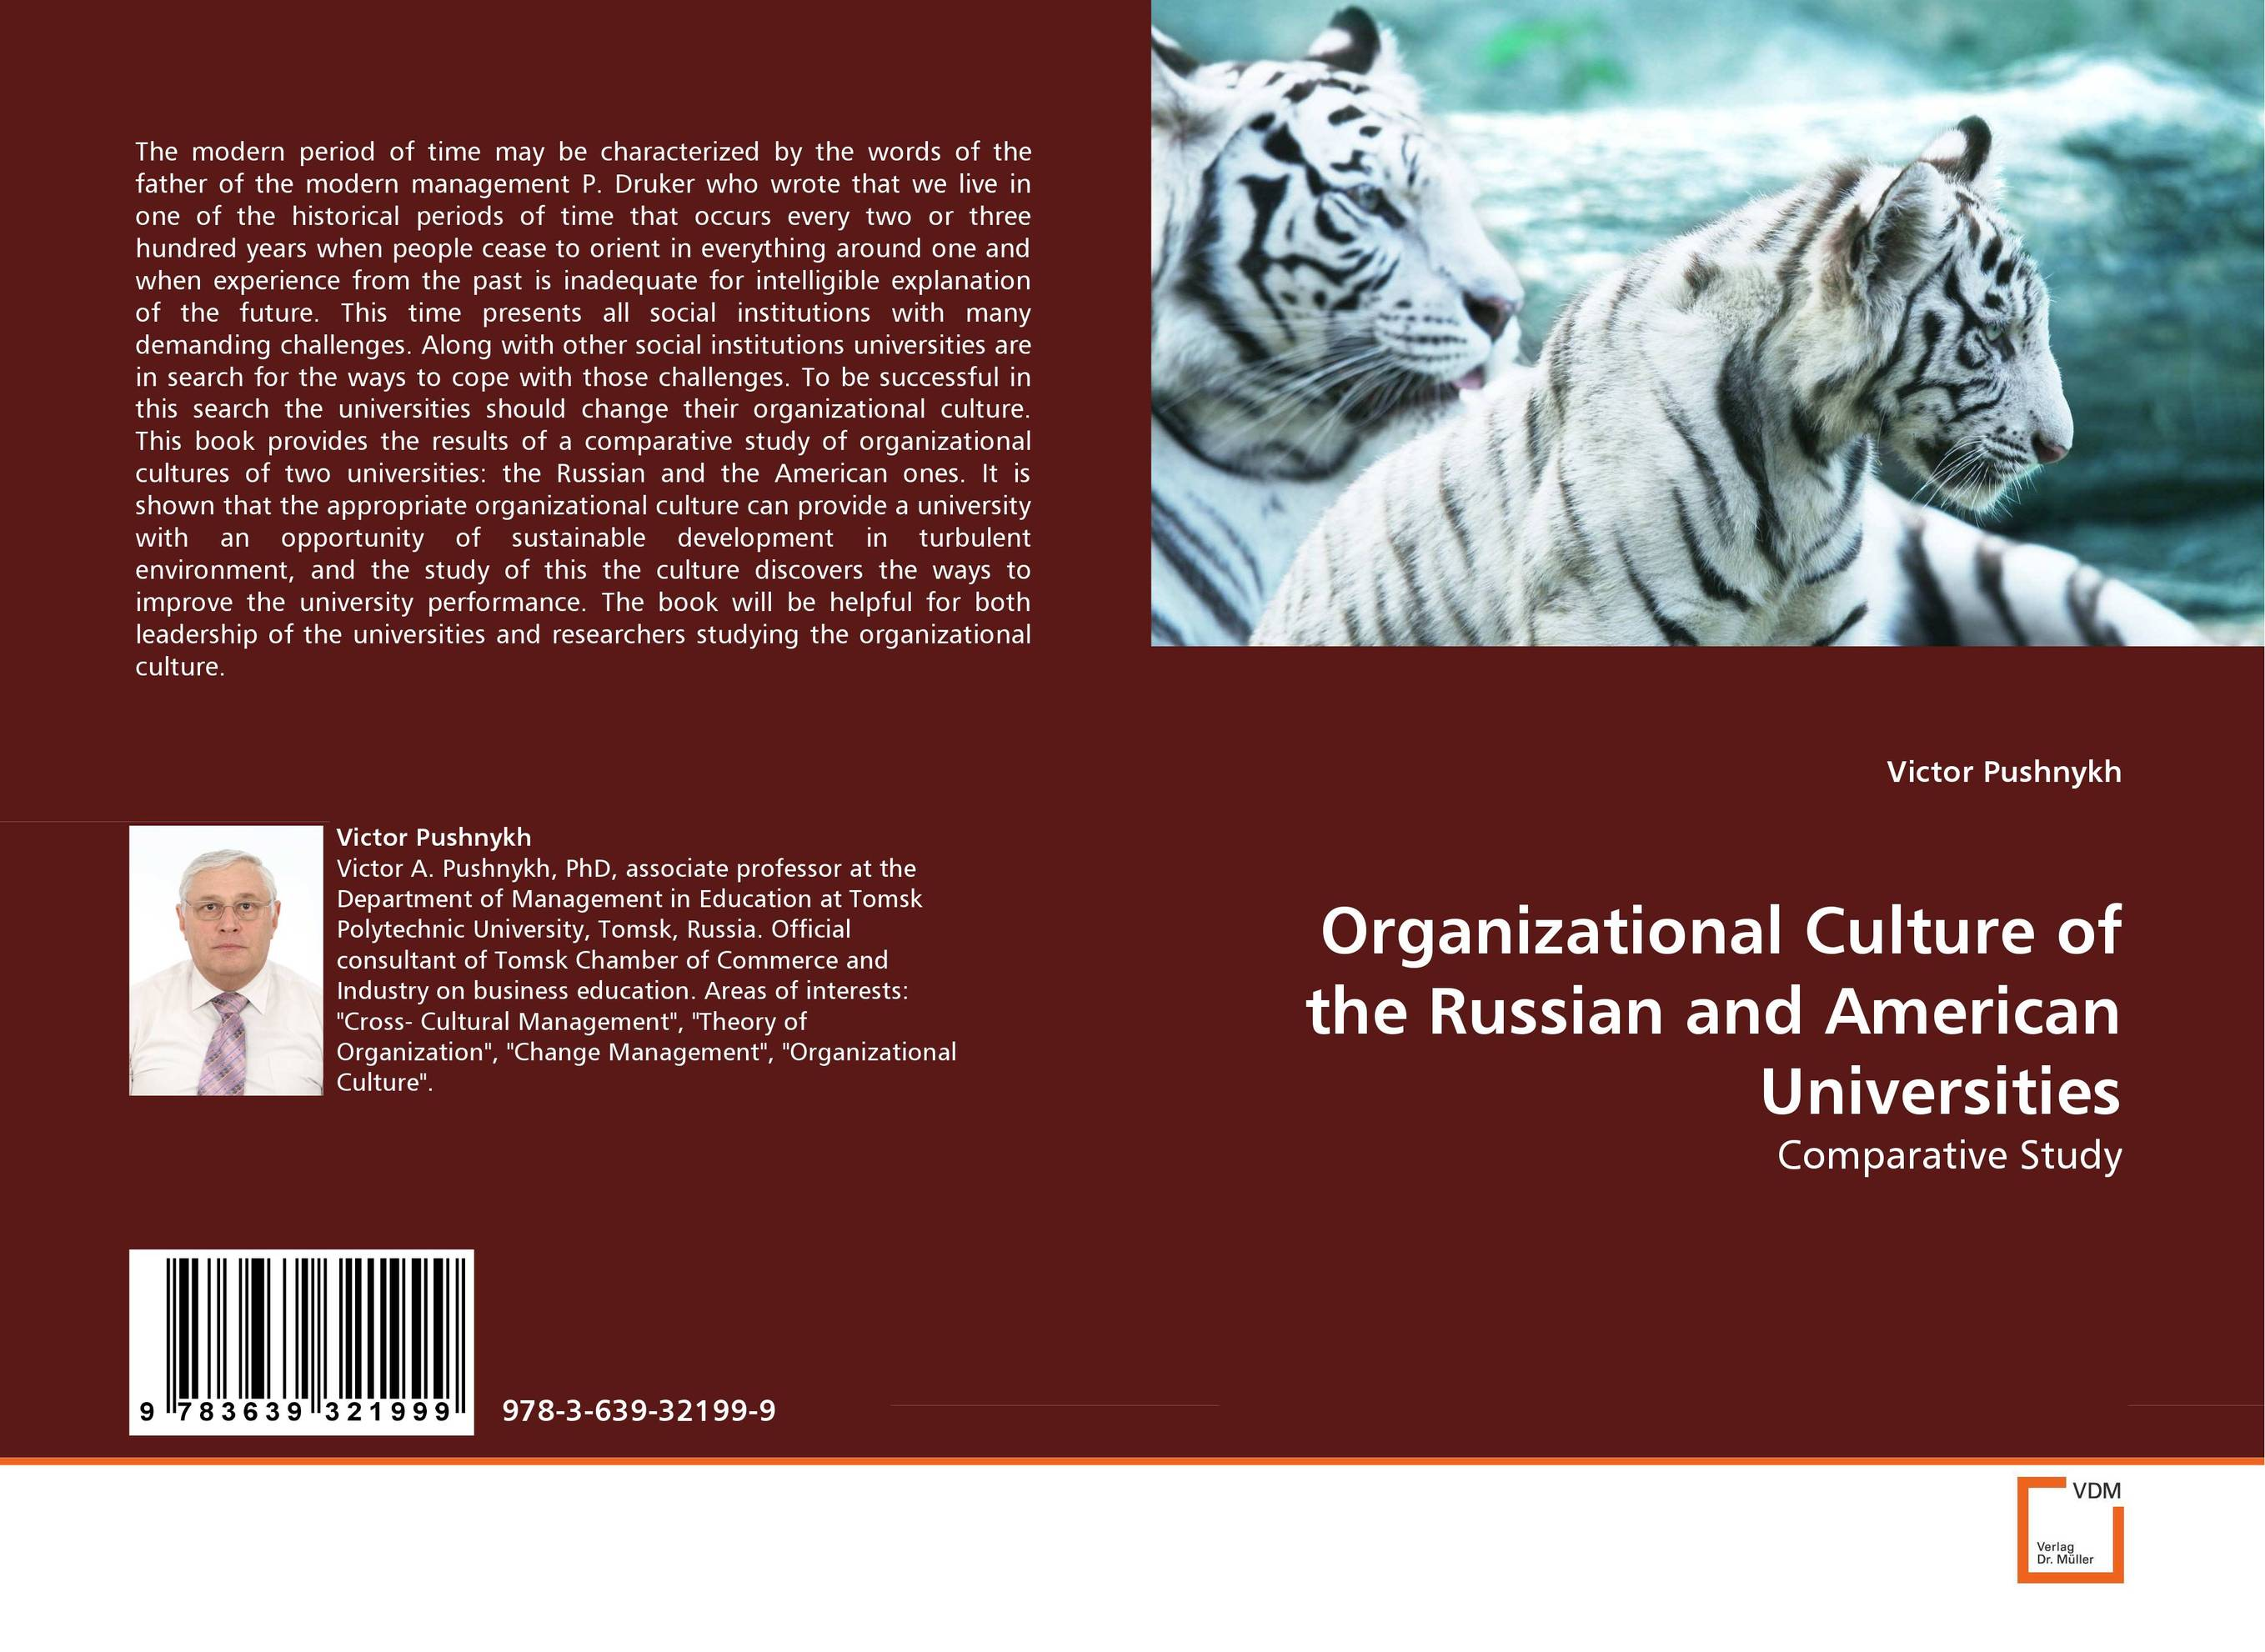 Organizational Culture of the Russian and American Universities